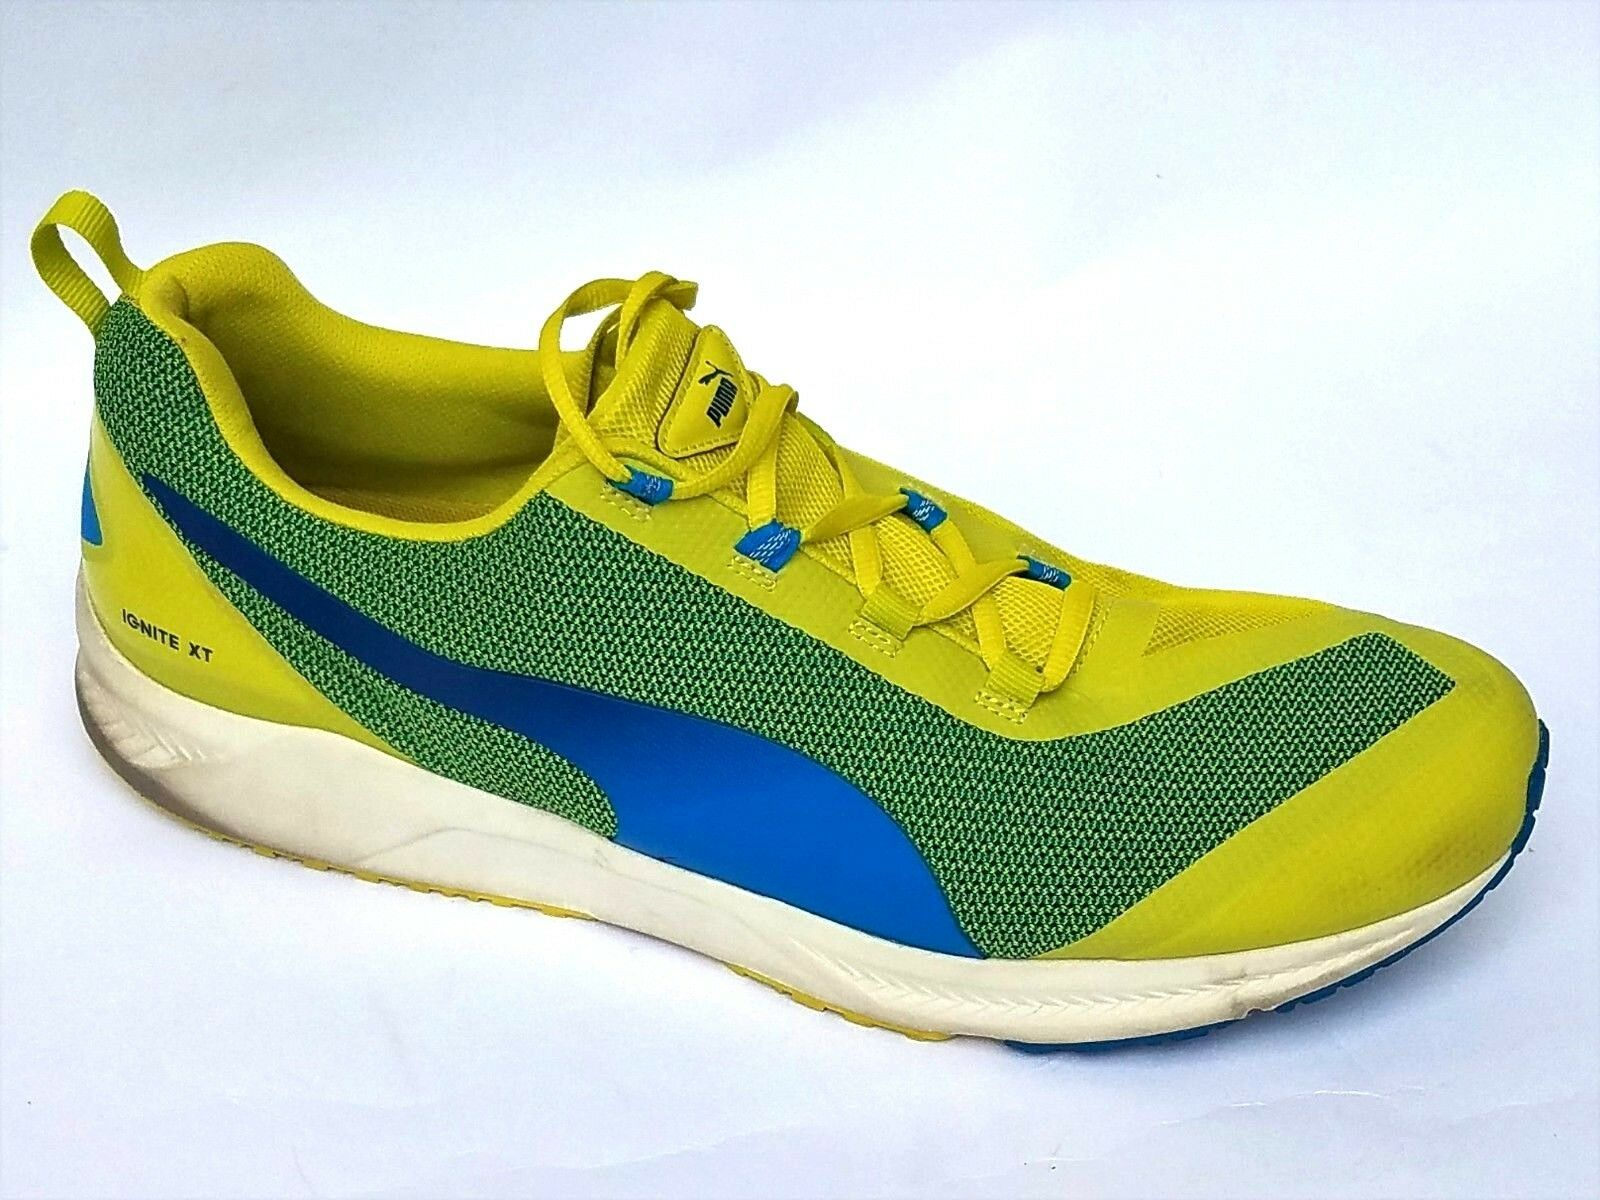 Puma Ignite XT Running Athletic shoes Sneakers Sulphur Spring  Cloisonnee 13 47